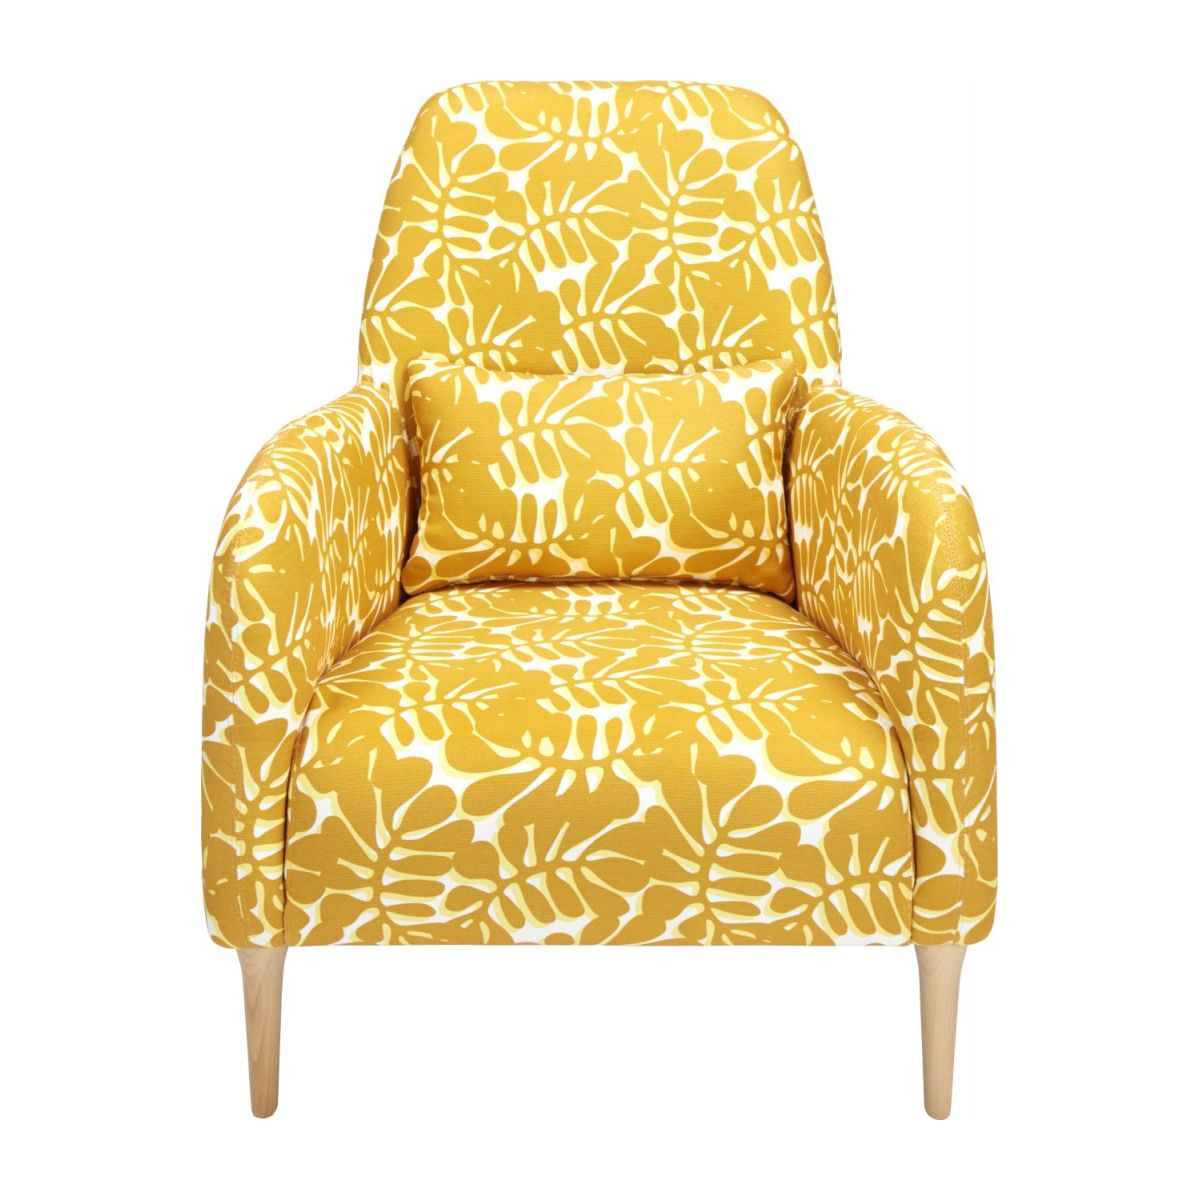 Armchair with yellow patterns n°3